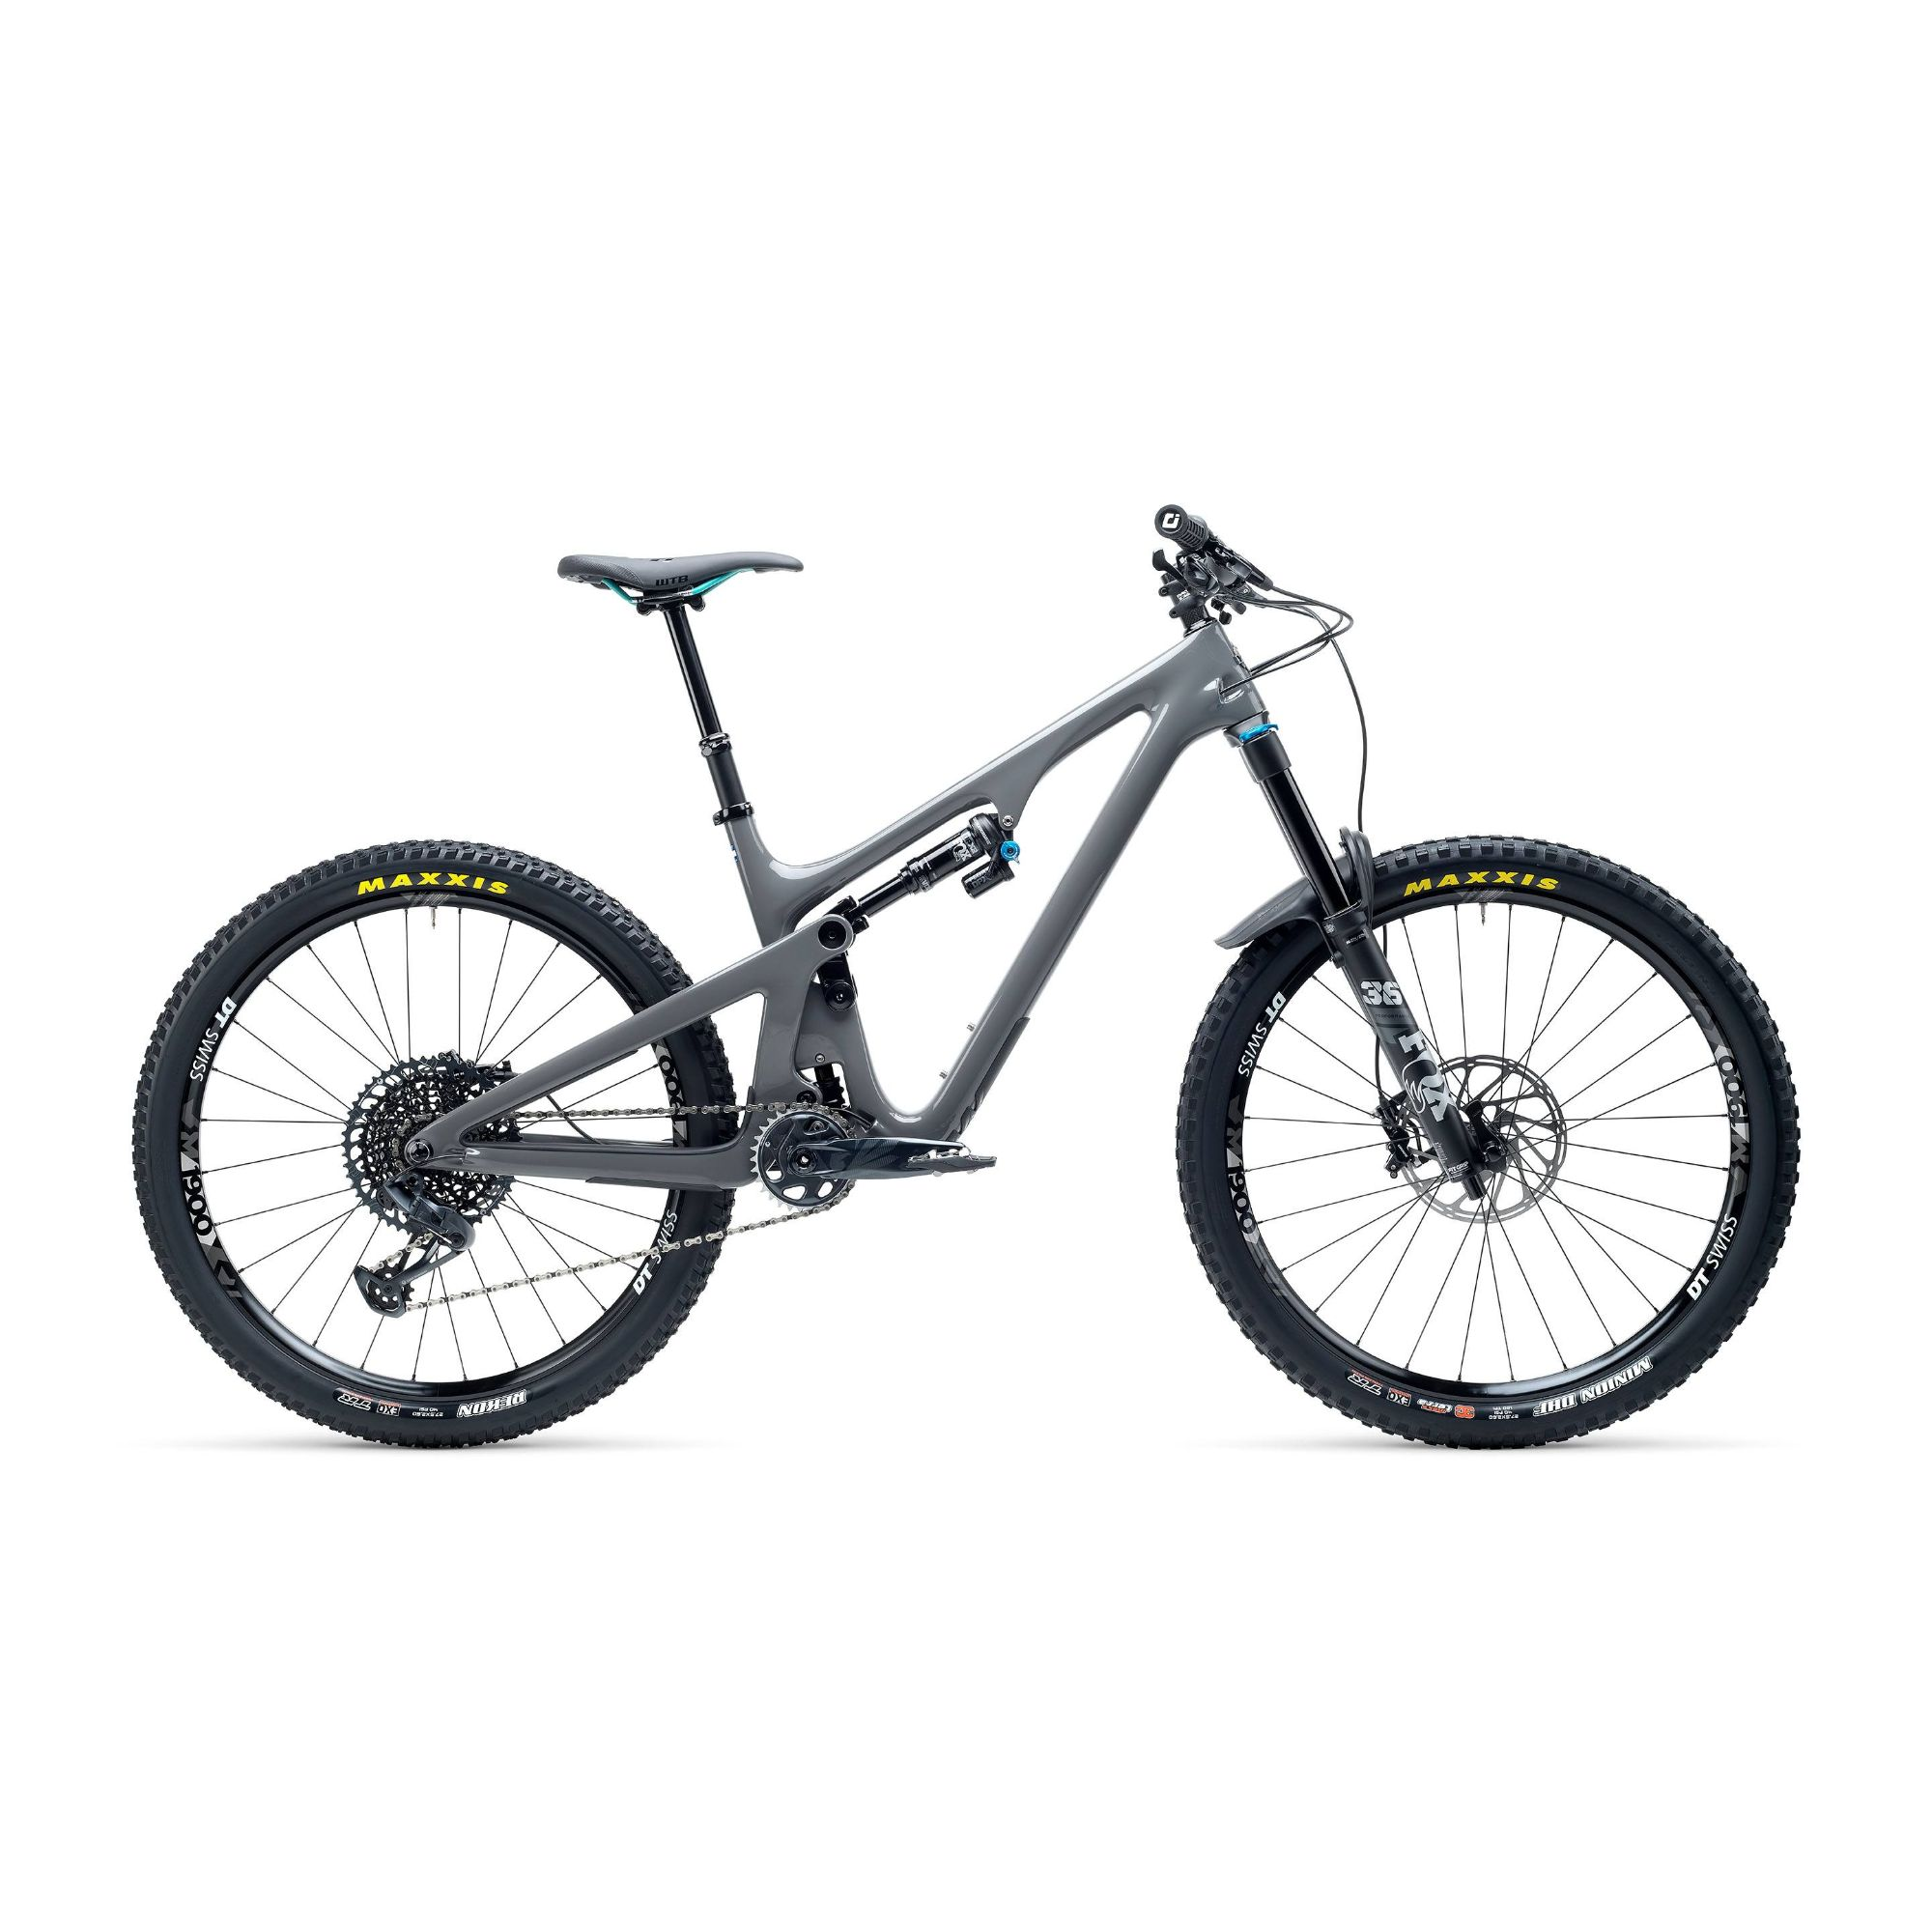 Yeti SB140 CSeries C2 GX Eagle 27.5 12spd Carbon Mountain Bike Smoke